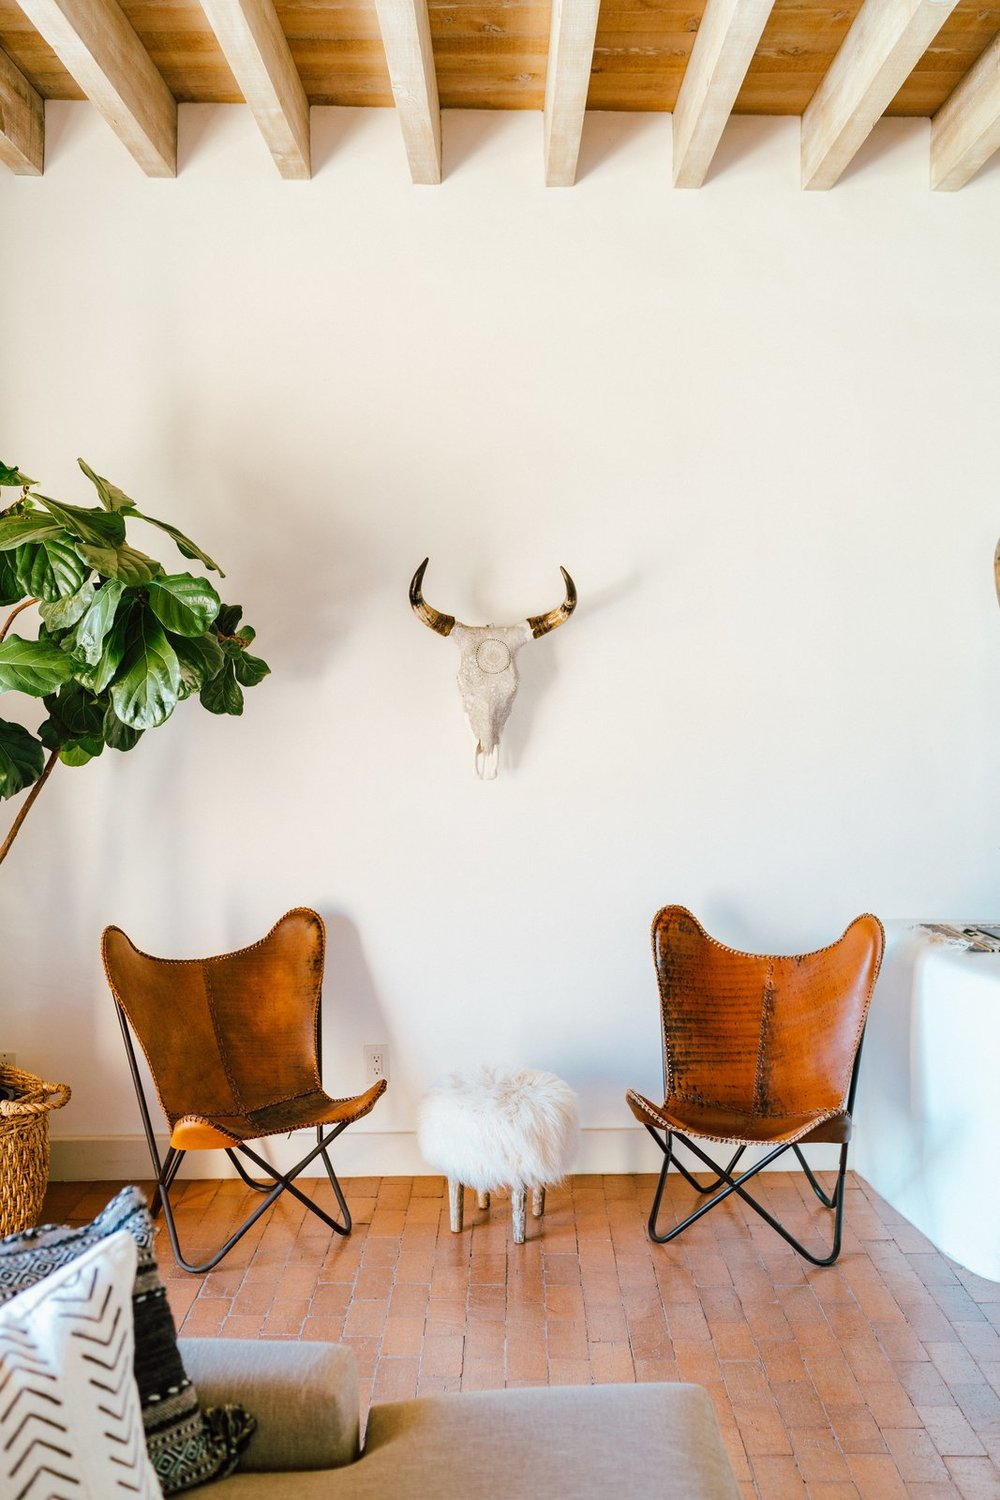 The 18-inch-thick adobe walls keep the house cool in the summer and cozy in the winter. An animal-themed nook situated next to a fiddle-leaf fig calls to mind a safari adventure. (Tim Melideo)